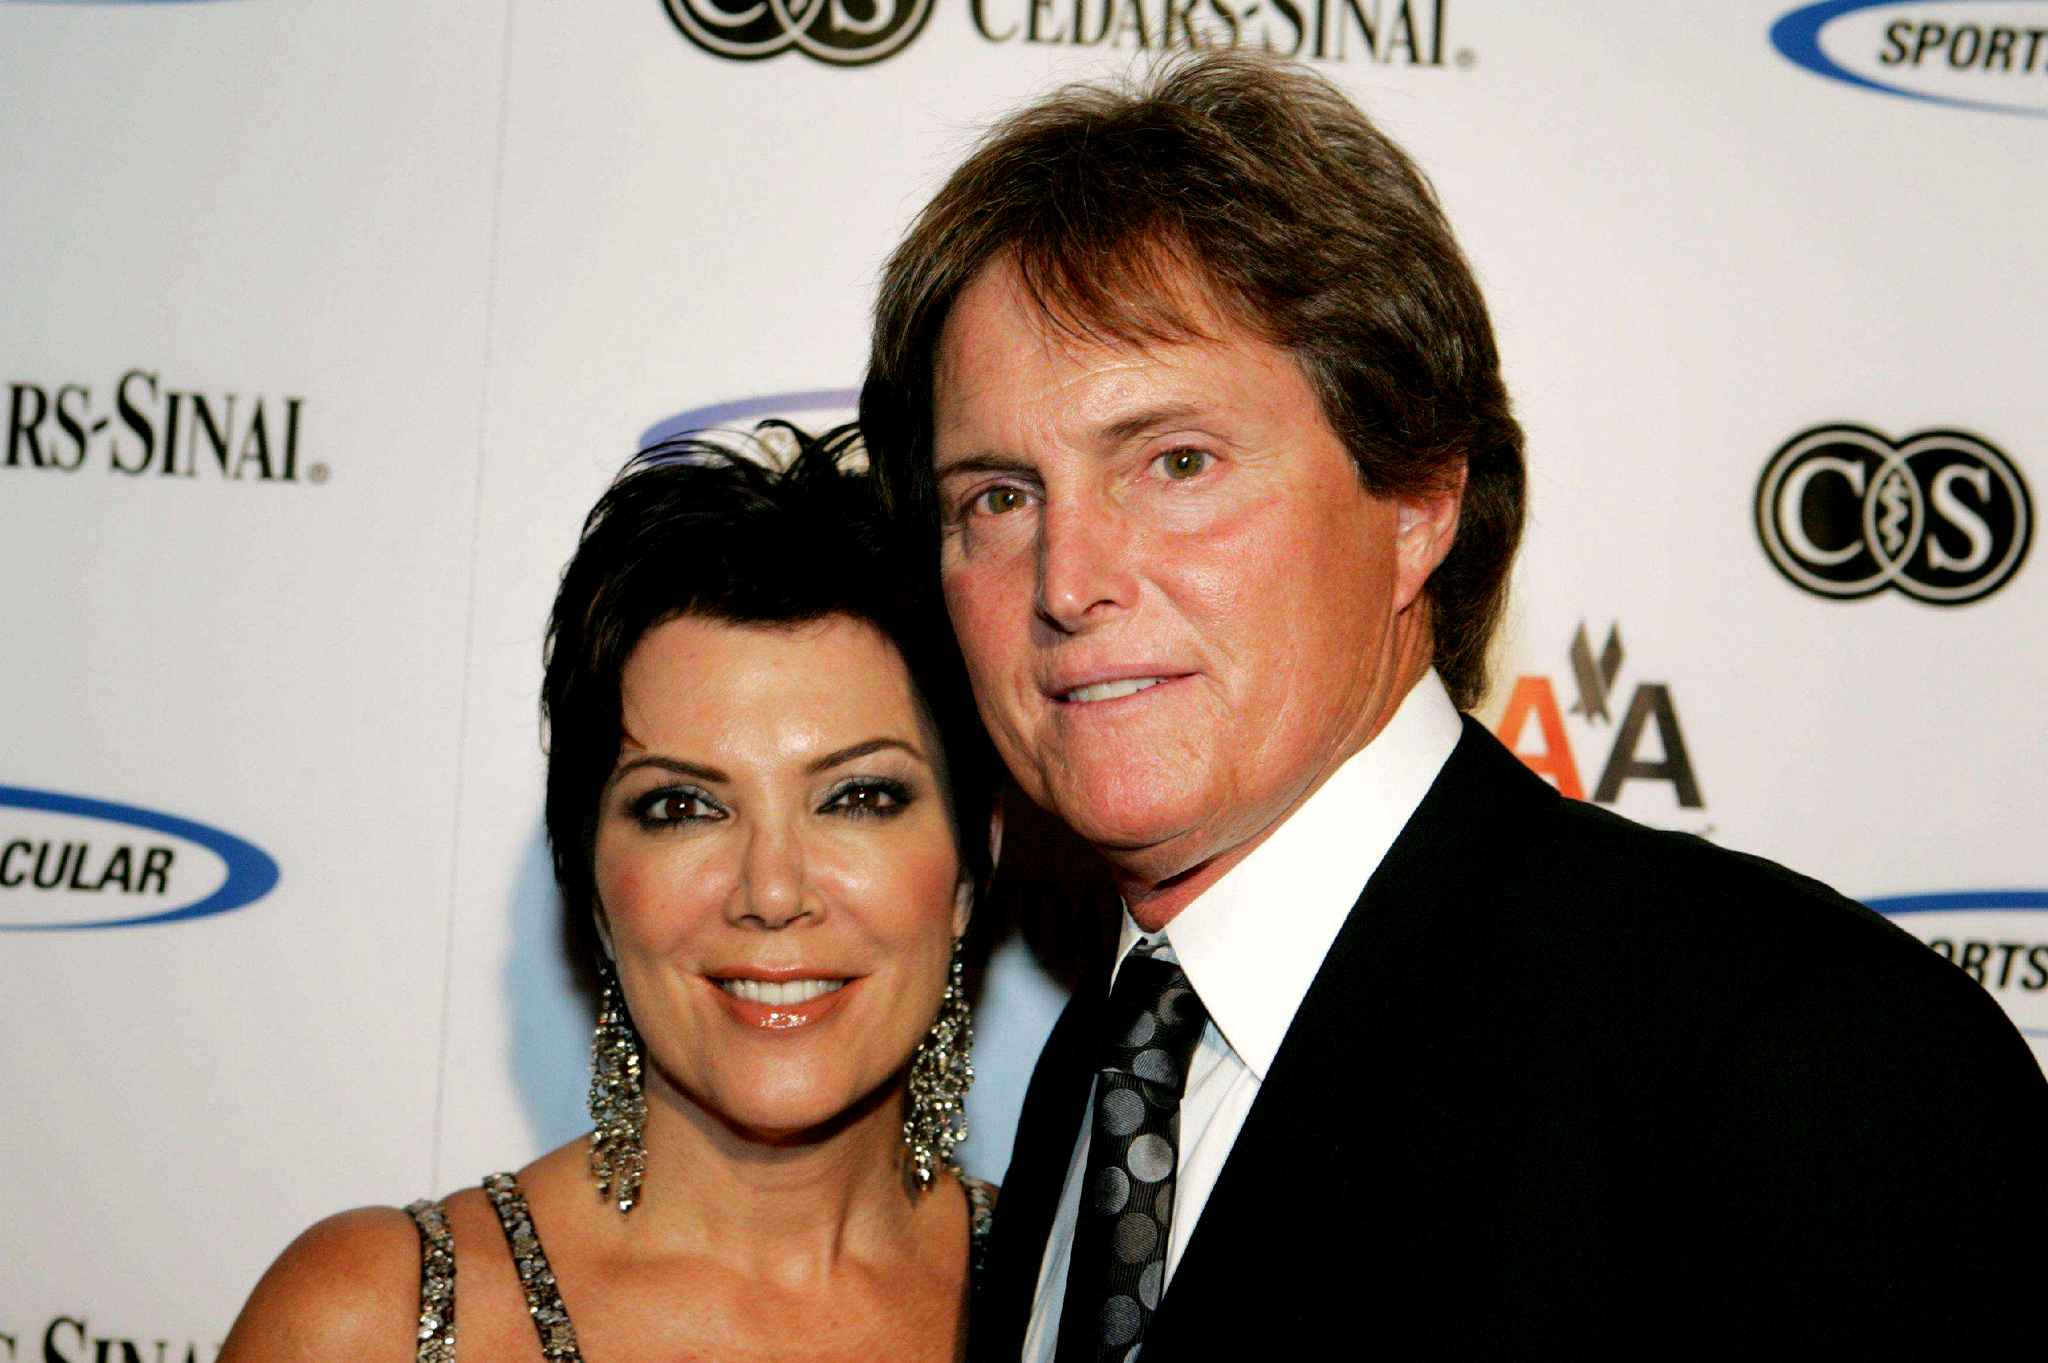 file-photo-bruce-jenner-e7f5-diaporama